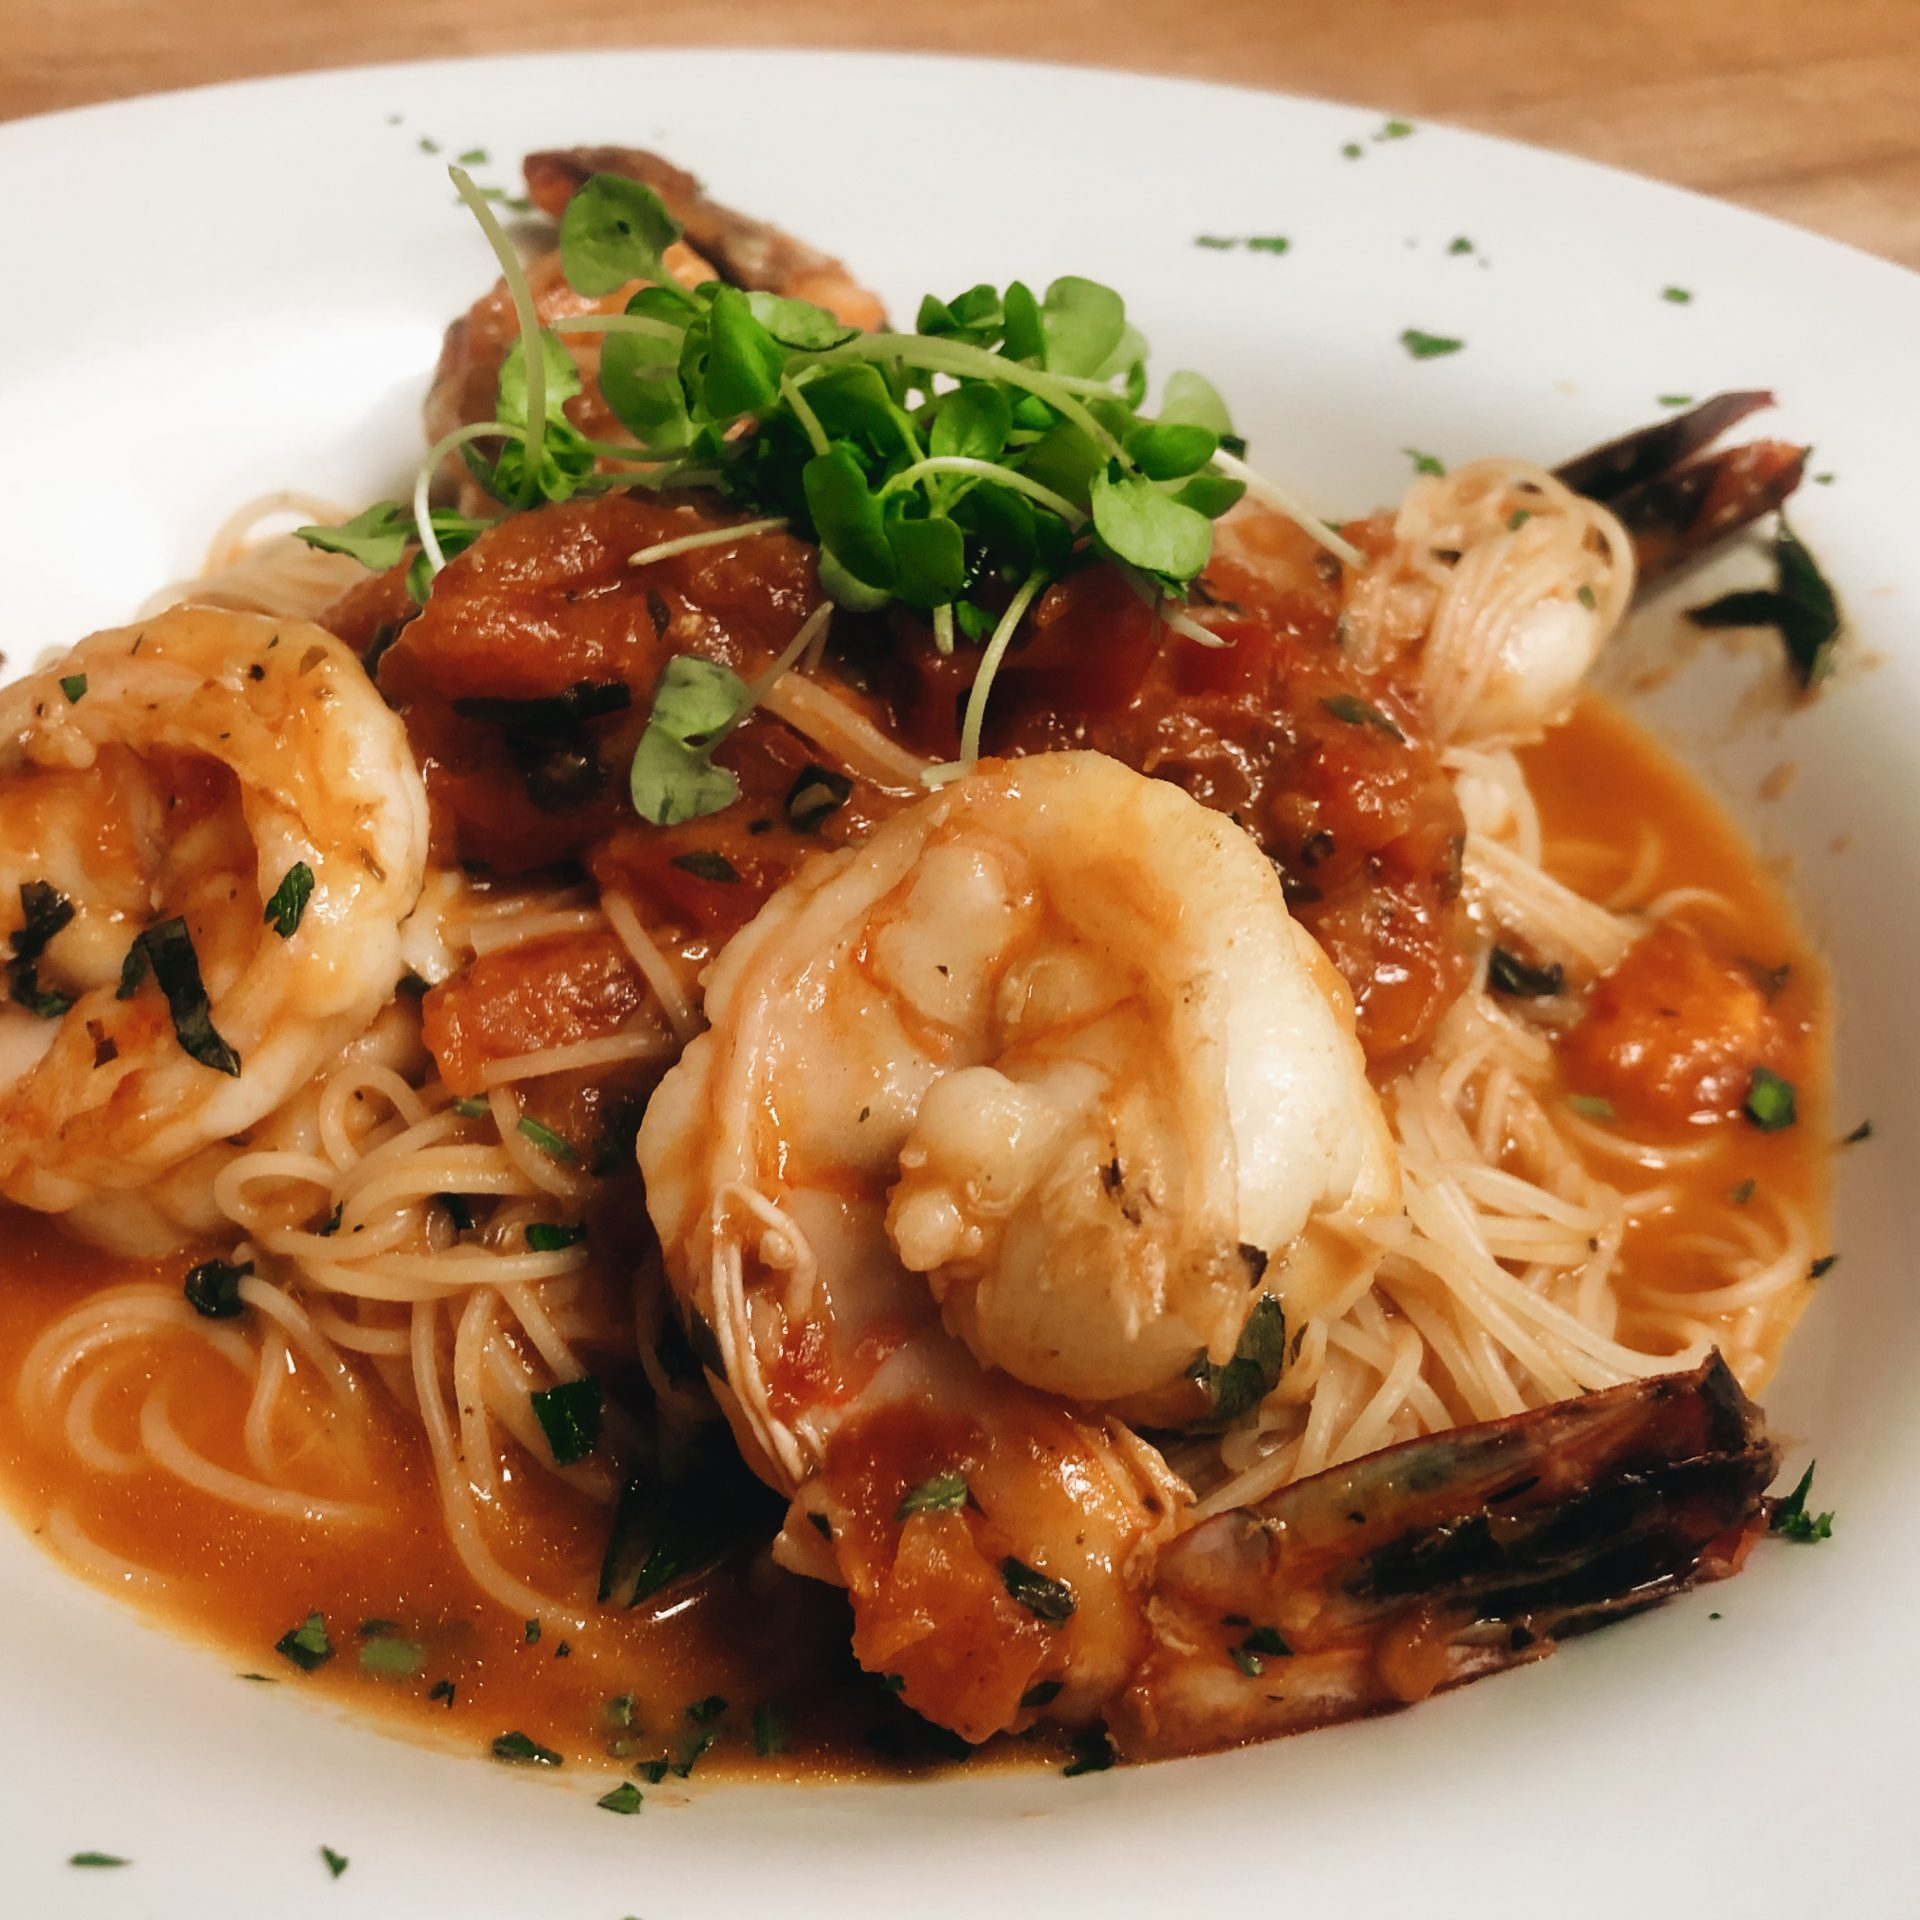 Jumbo Shrimp with angel hair pasta, roma tomatoes, and basil garnished with micro greens